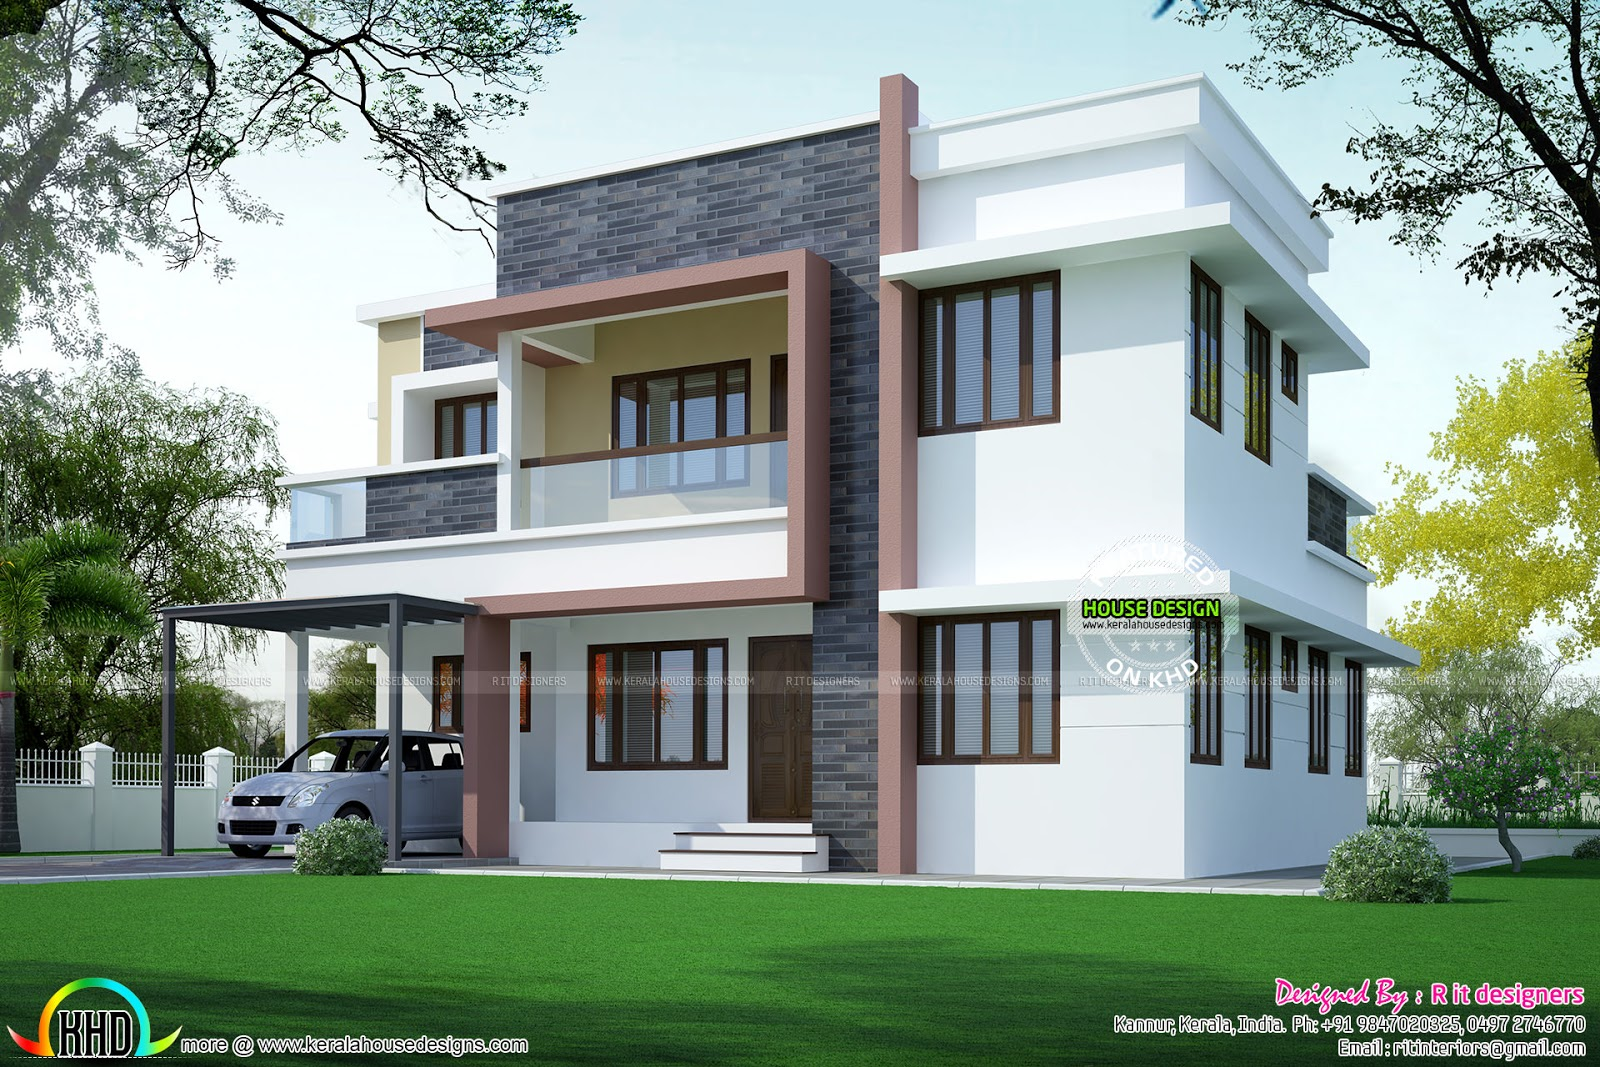 Simple home plan in modern style kerala home design and floor plans Simple modern house designs and floor plans